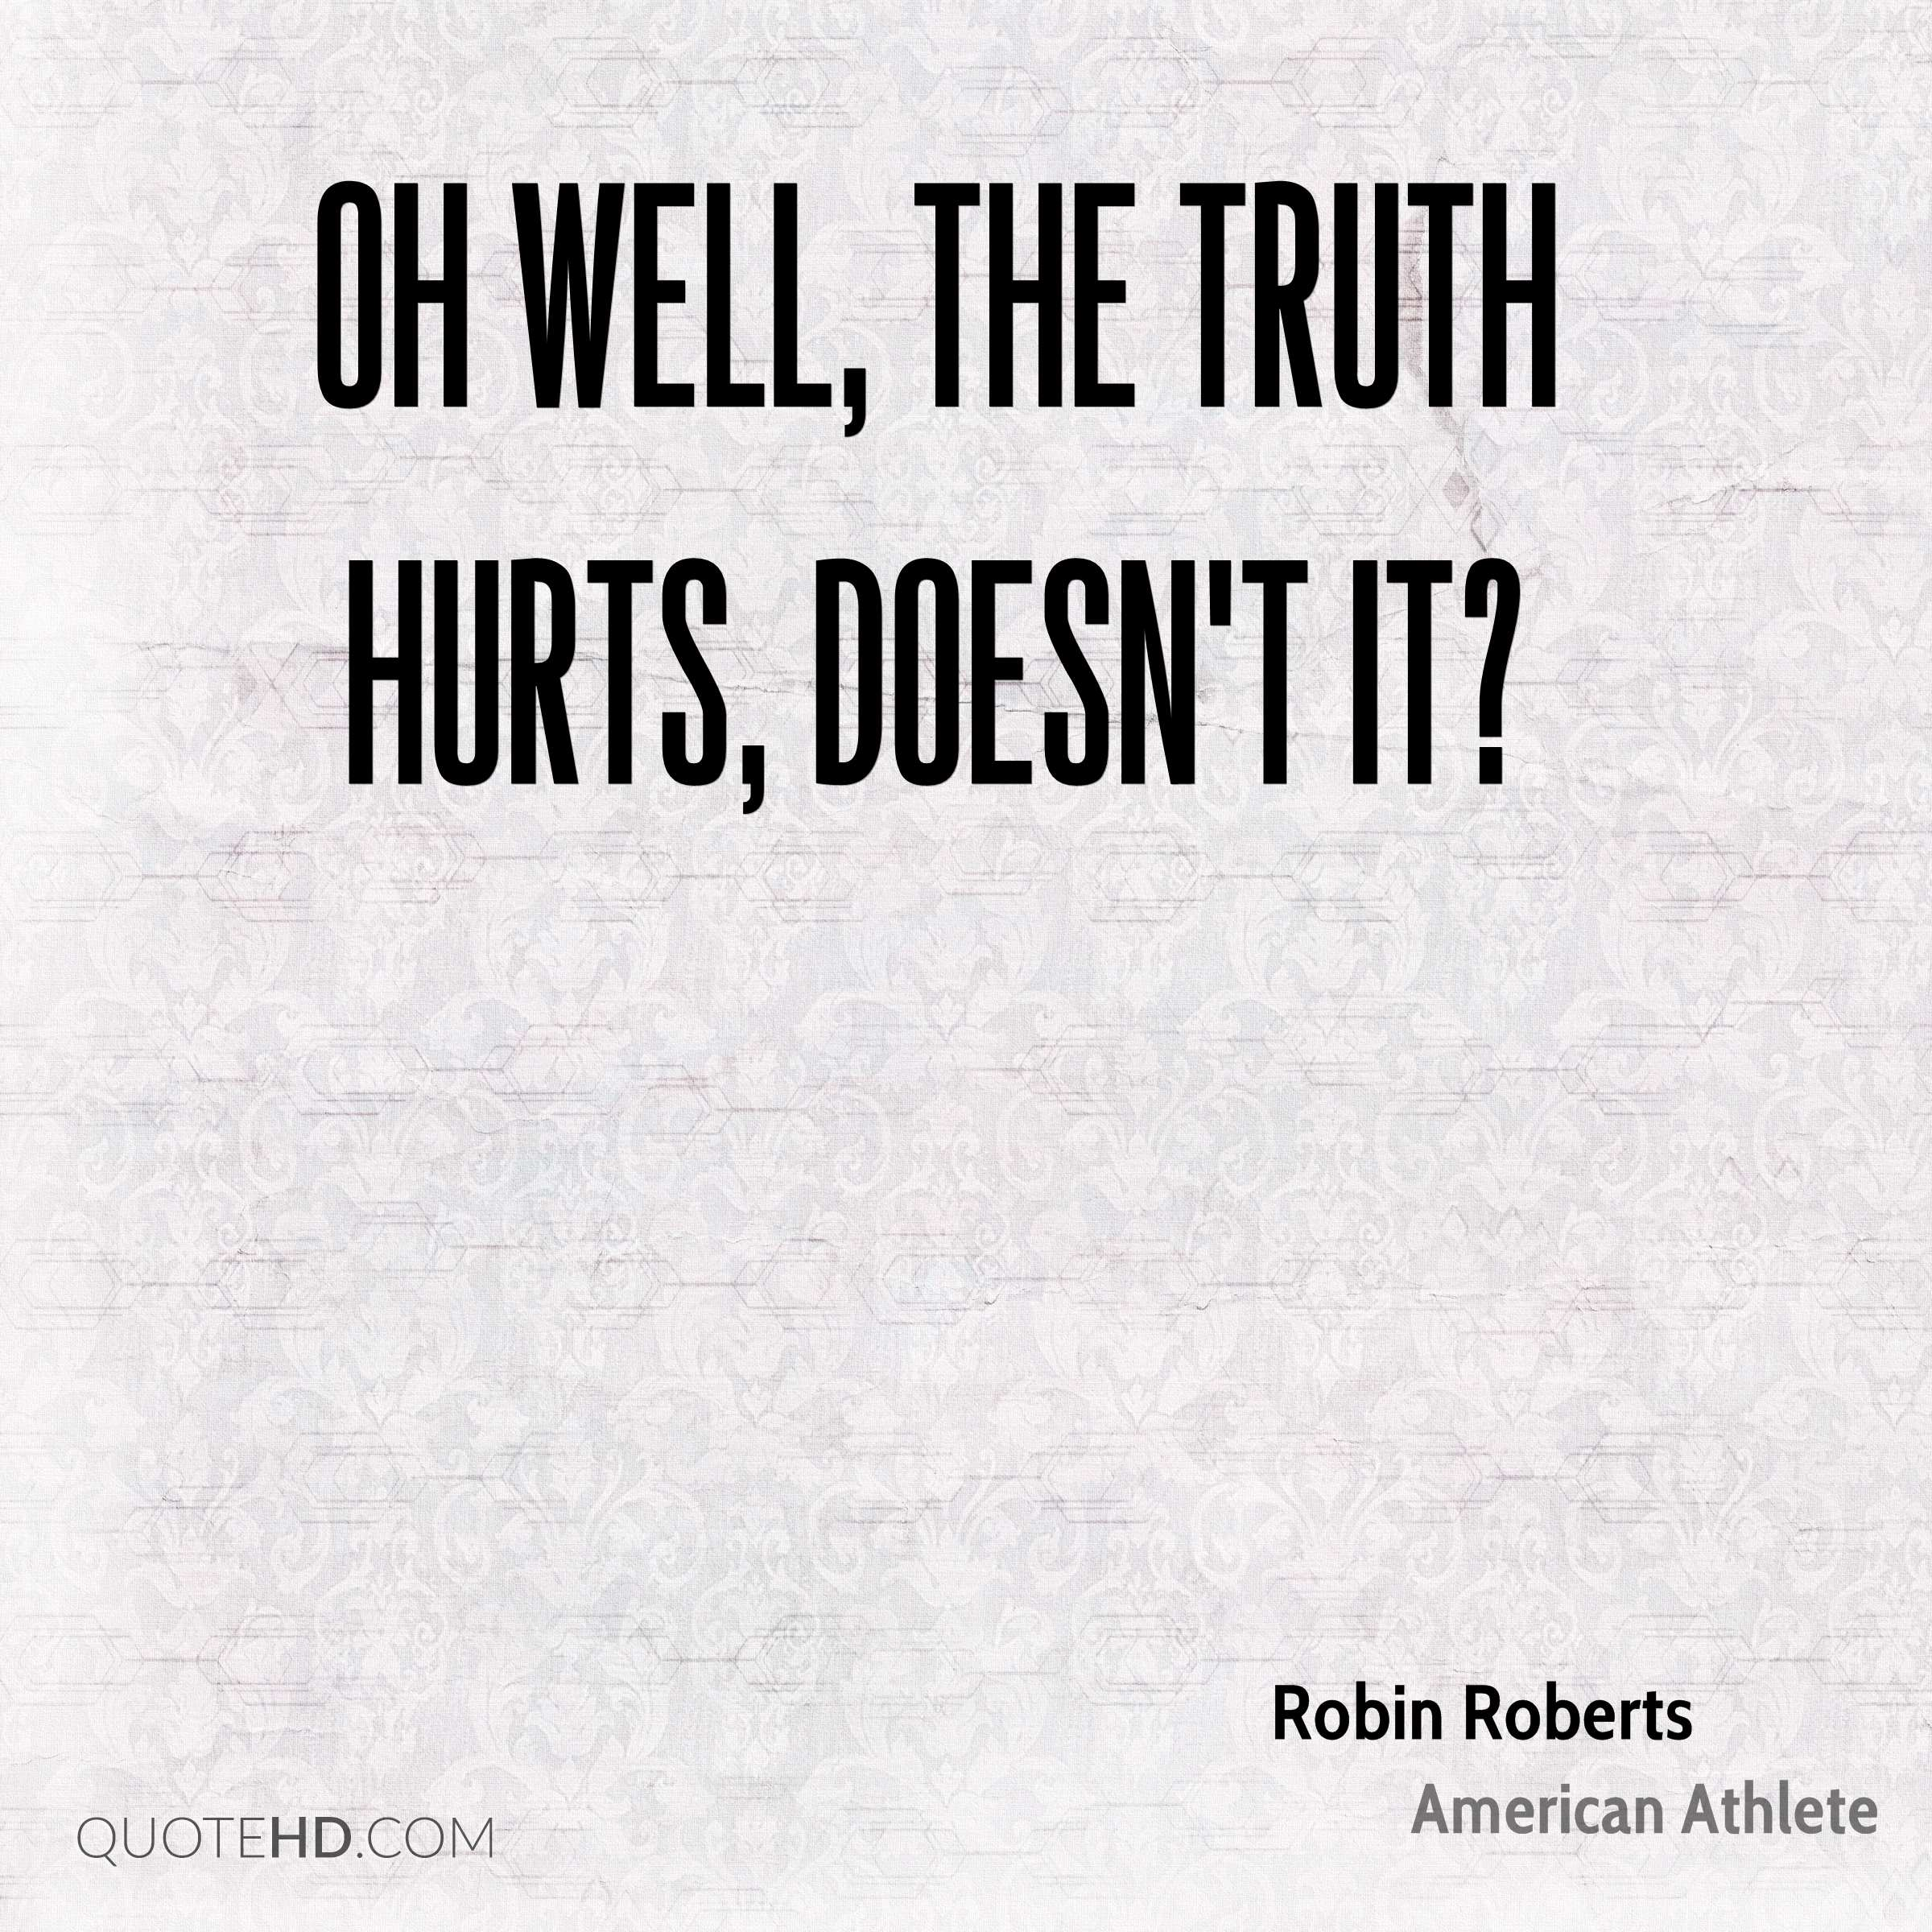 Robin Roberts Quotes   QuoteHD